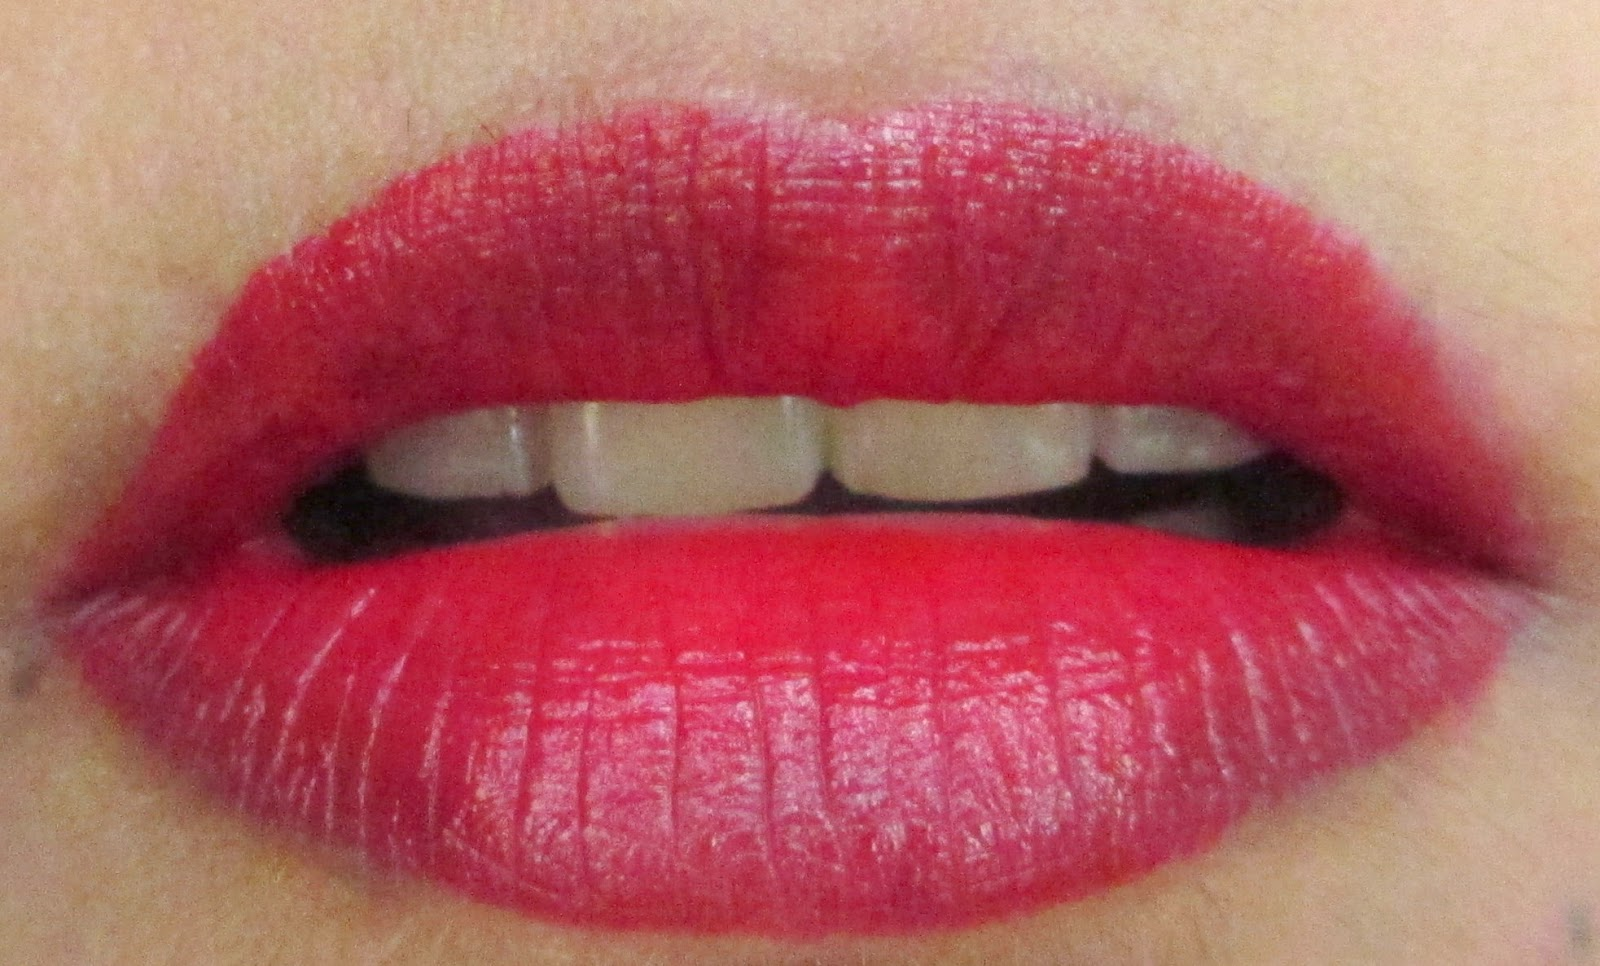 Arpitas Silkygirl Moisture Smooth Lip Color 03 Simply Pink And Now The Star Of Show Red Lips Using Nyx Round Lipstick In Chaos See My Review Here